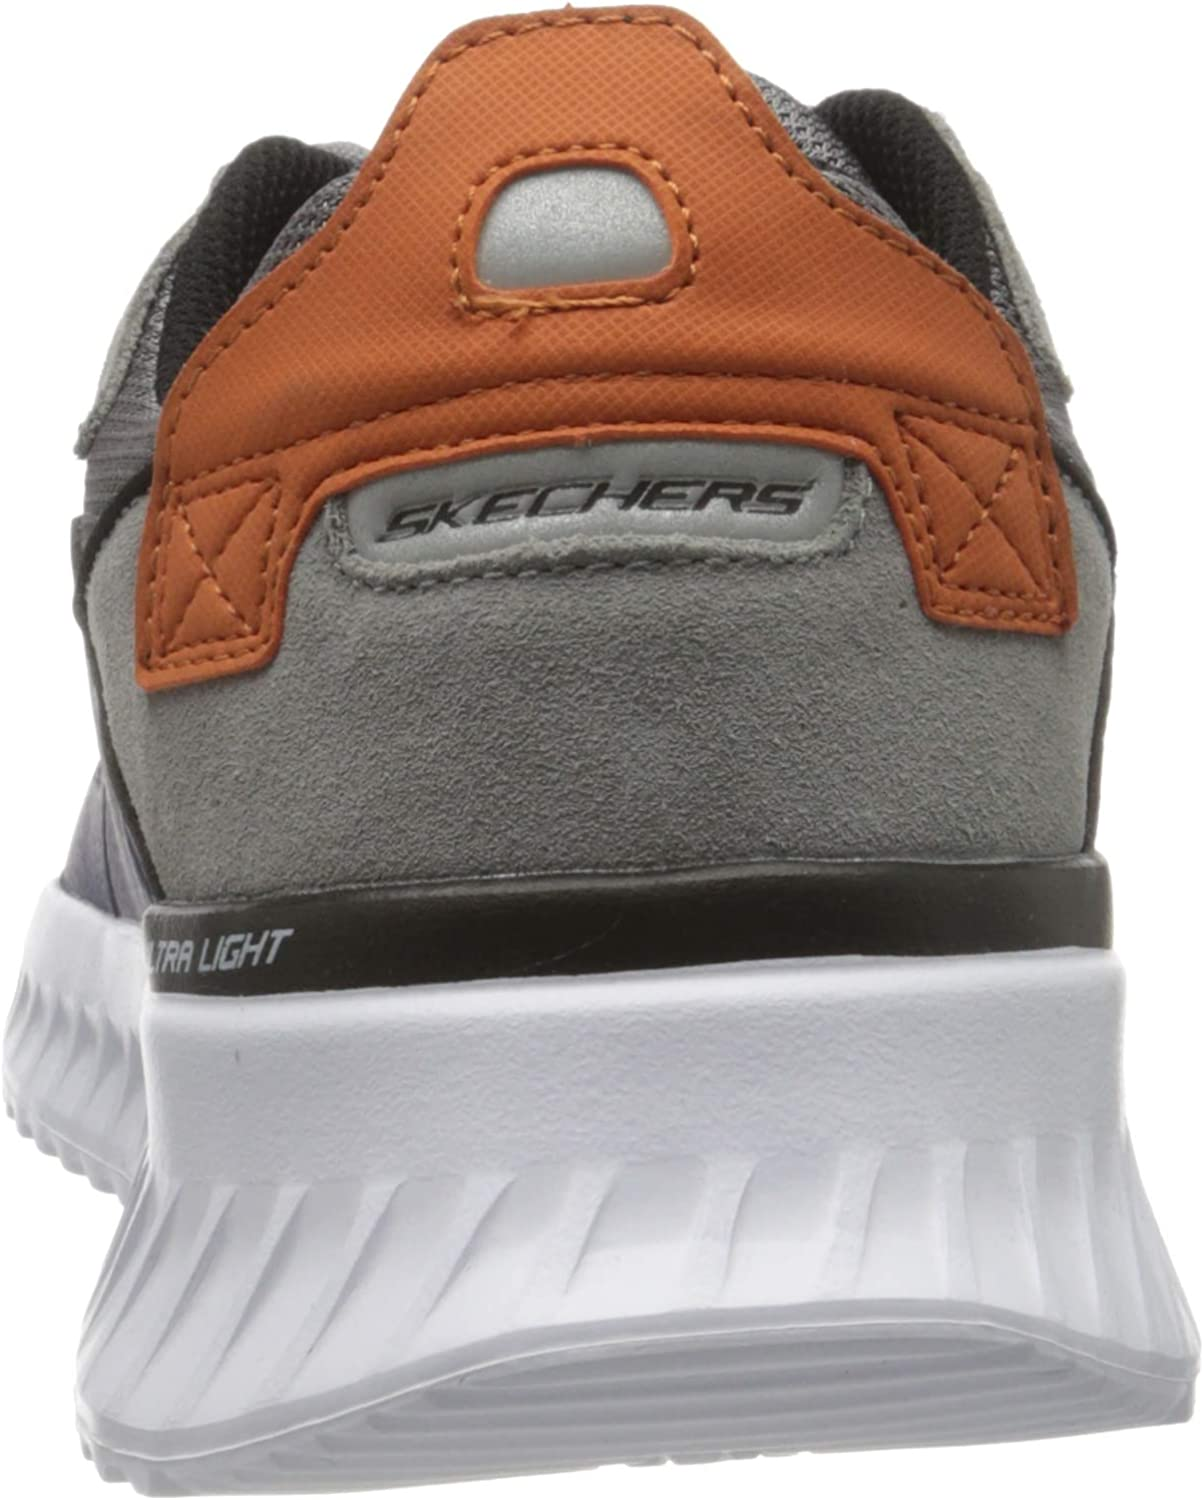 Skechers Mens Matera 2.0 Ximino Low Top Sneakers Shoes